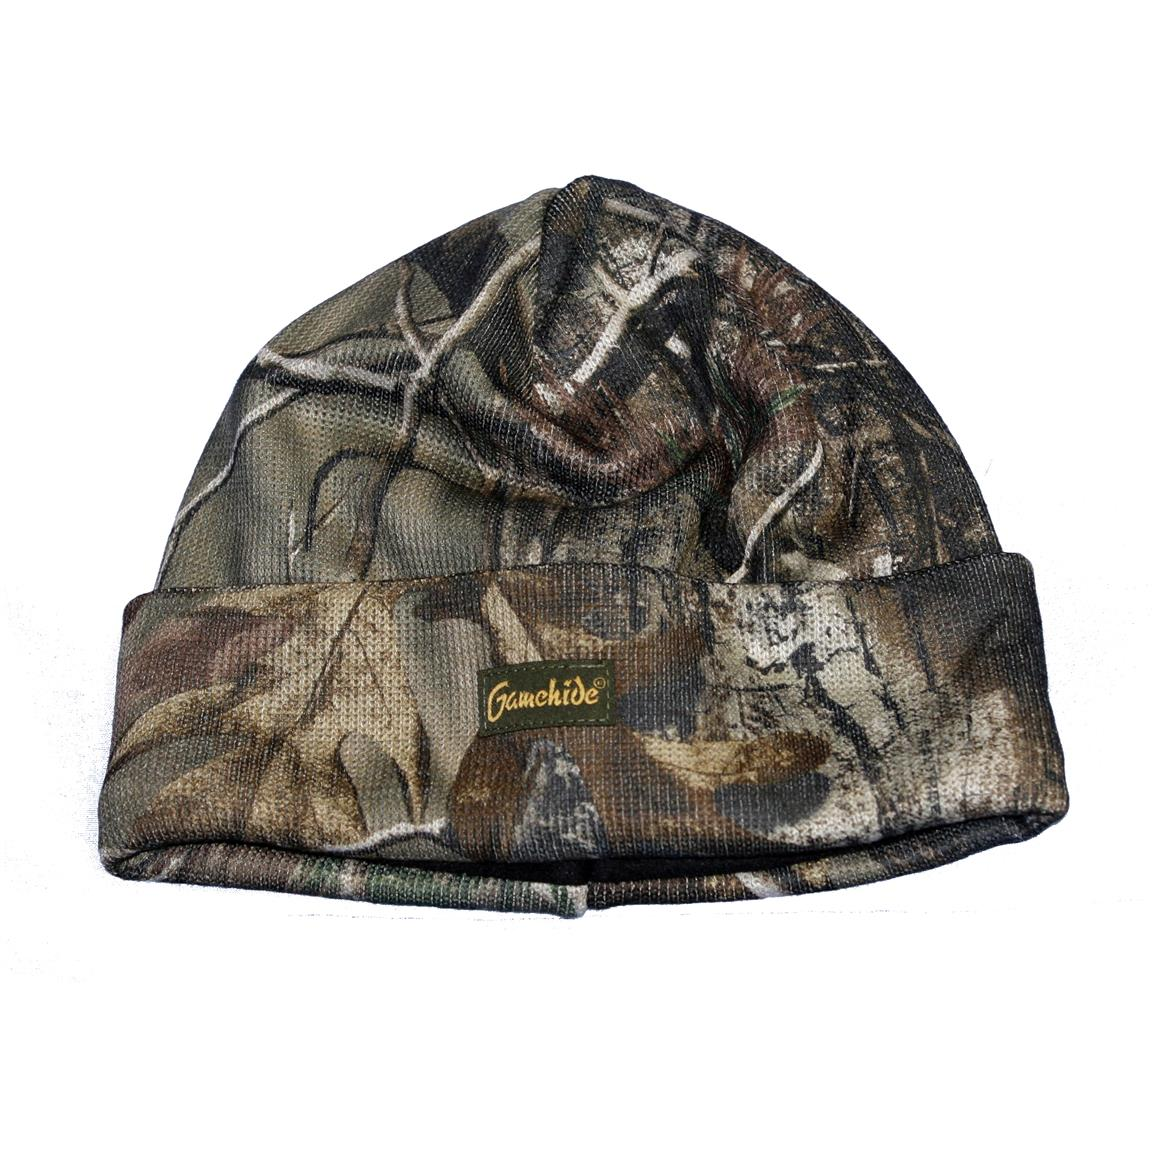 Gamehide® 100 gram Thinsulate™ Insulation Knit Hat, Realtree Xtra®